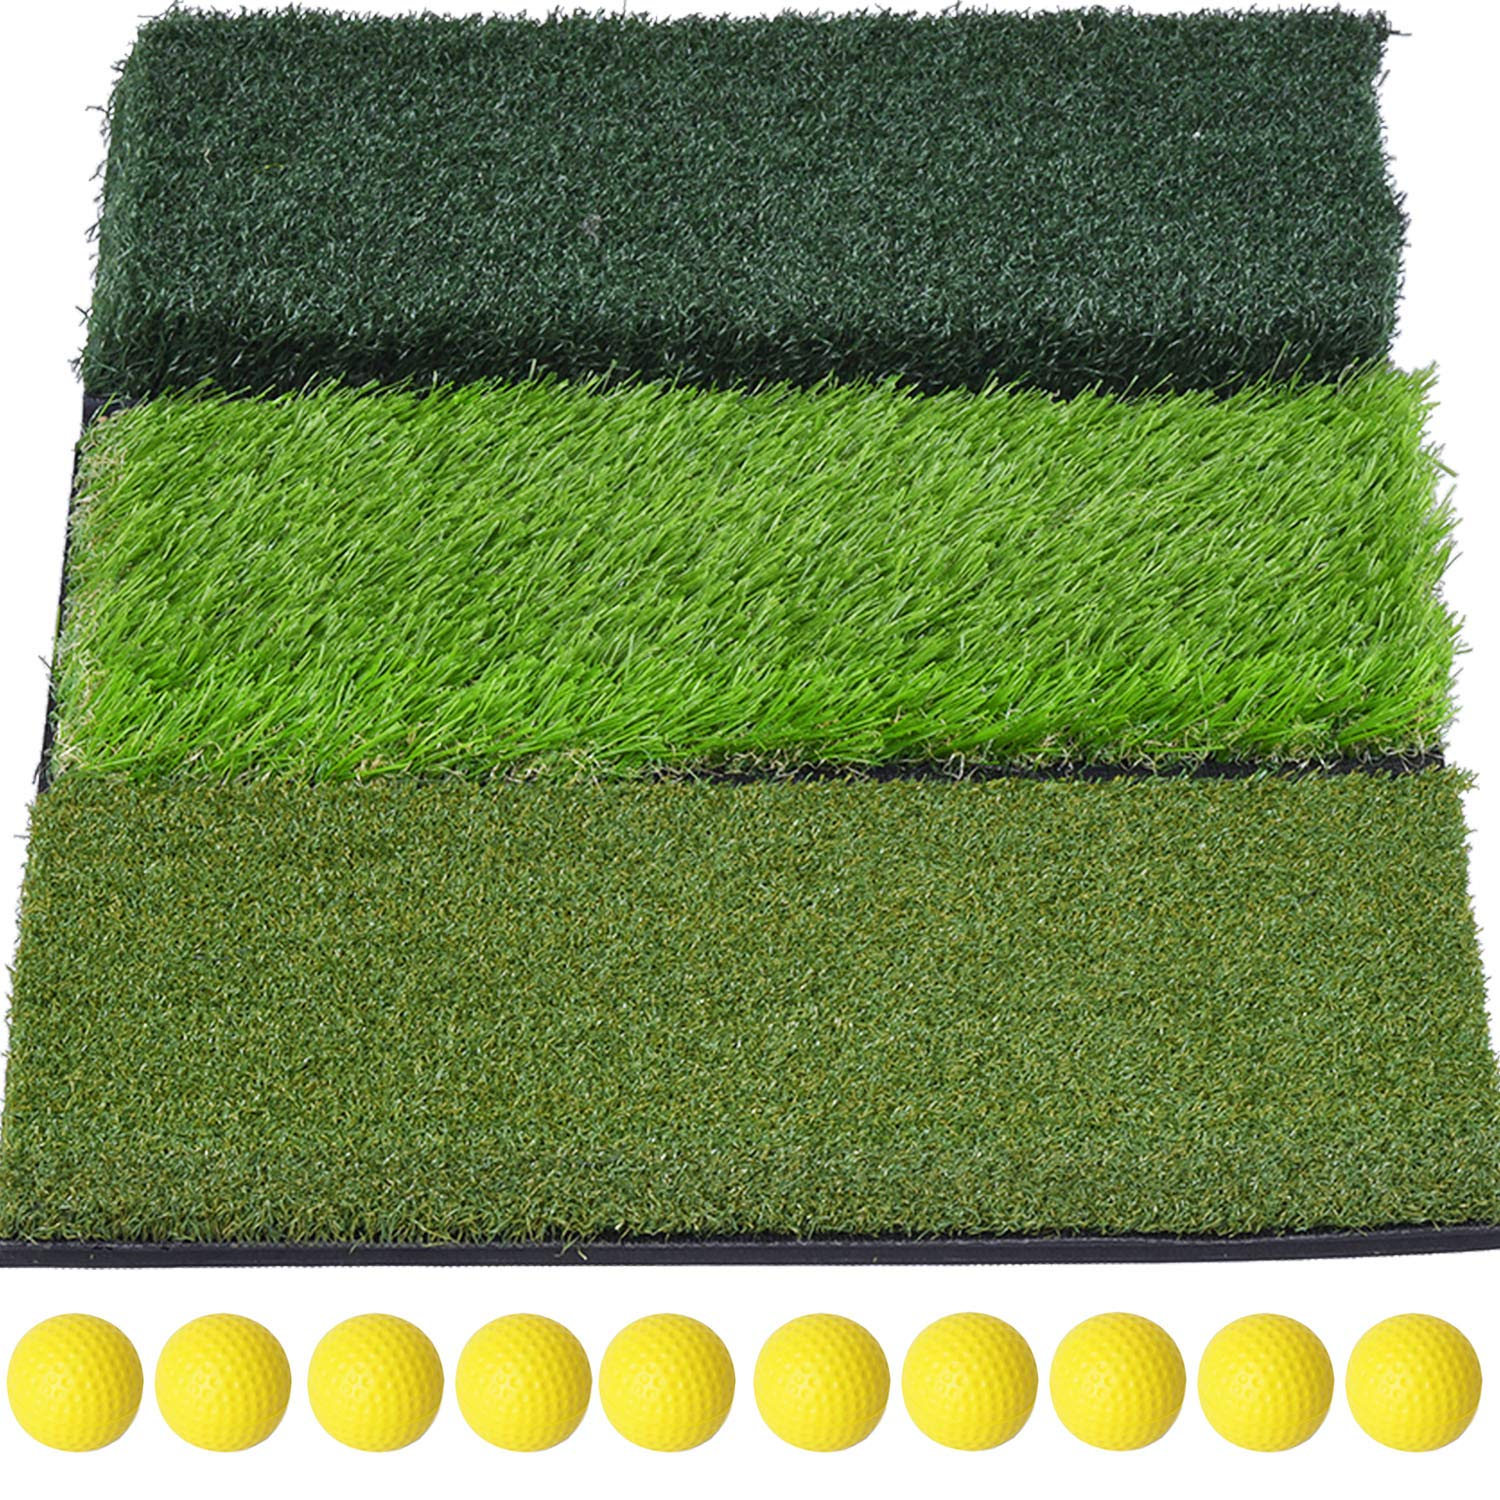 SkyLife 3-Turf Golf Hitting Grass Mat, Portable Training Fairway Rough TEE Turf, Driving Chipping Putting Golf Equipment, Home Backyard Garage Outdoor Practice, 25''x16'' by SkyLife